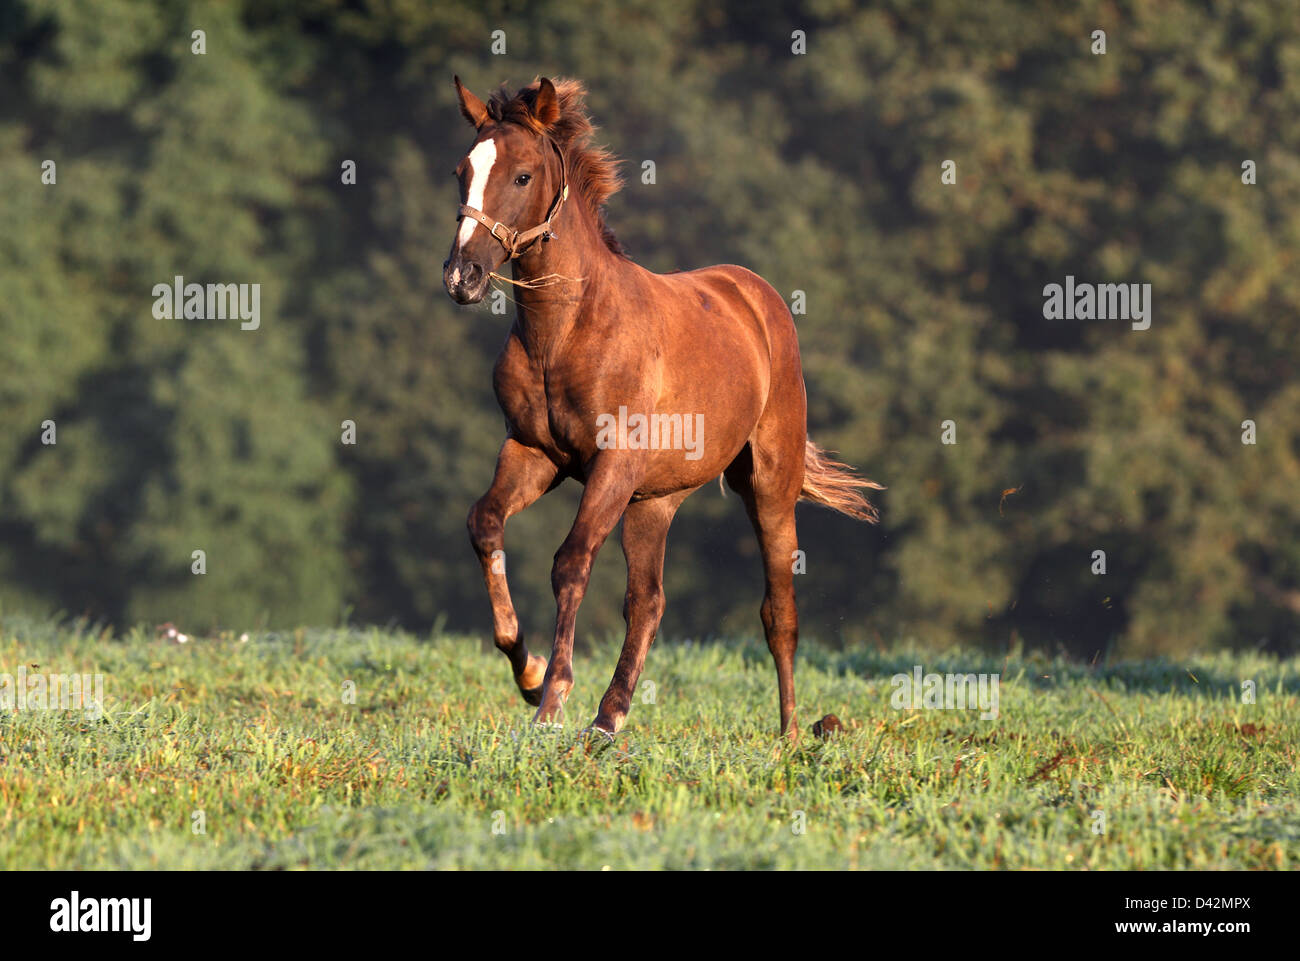 Görlsdorf, Germany, foal gallop on pasture - Stock Image